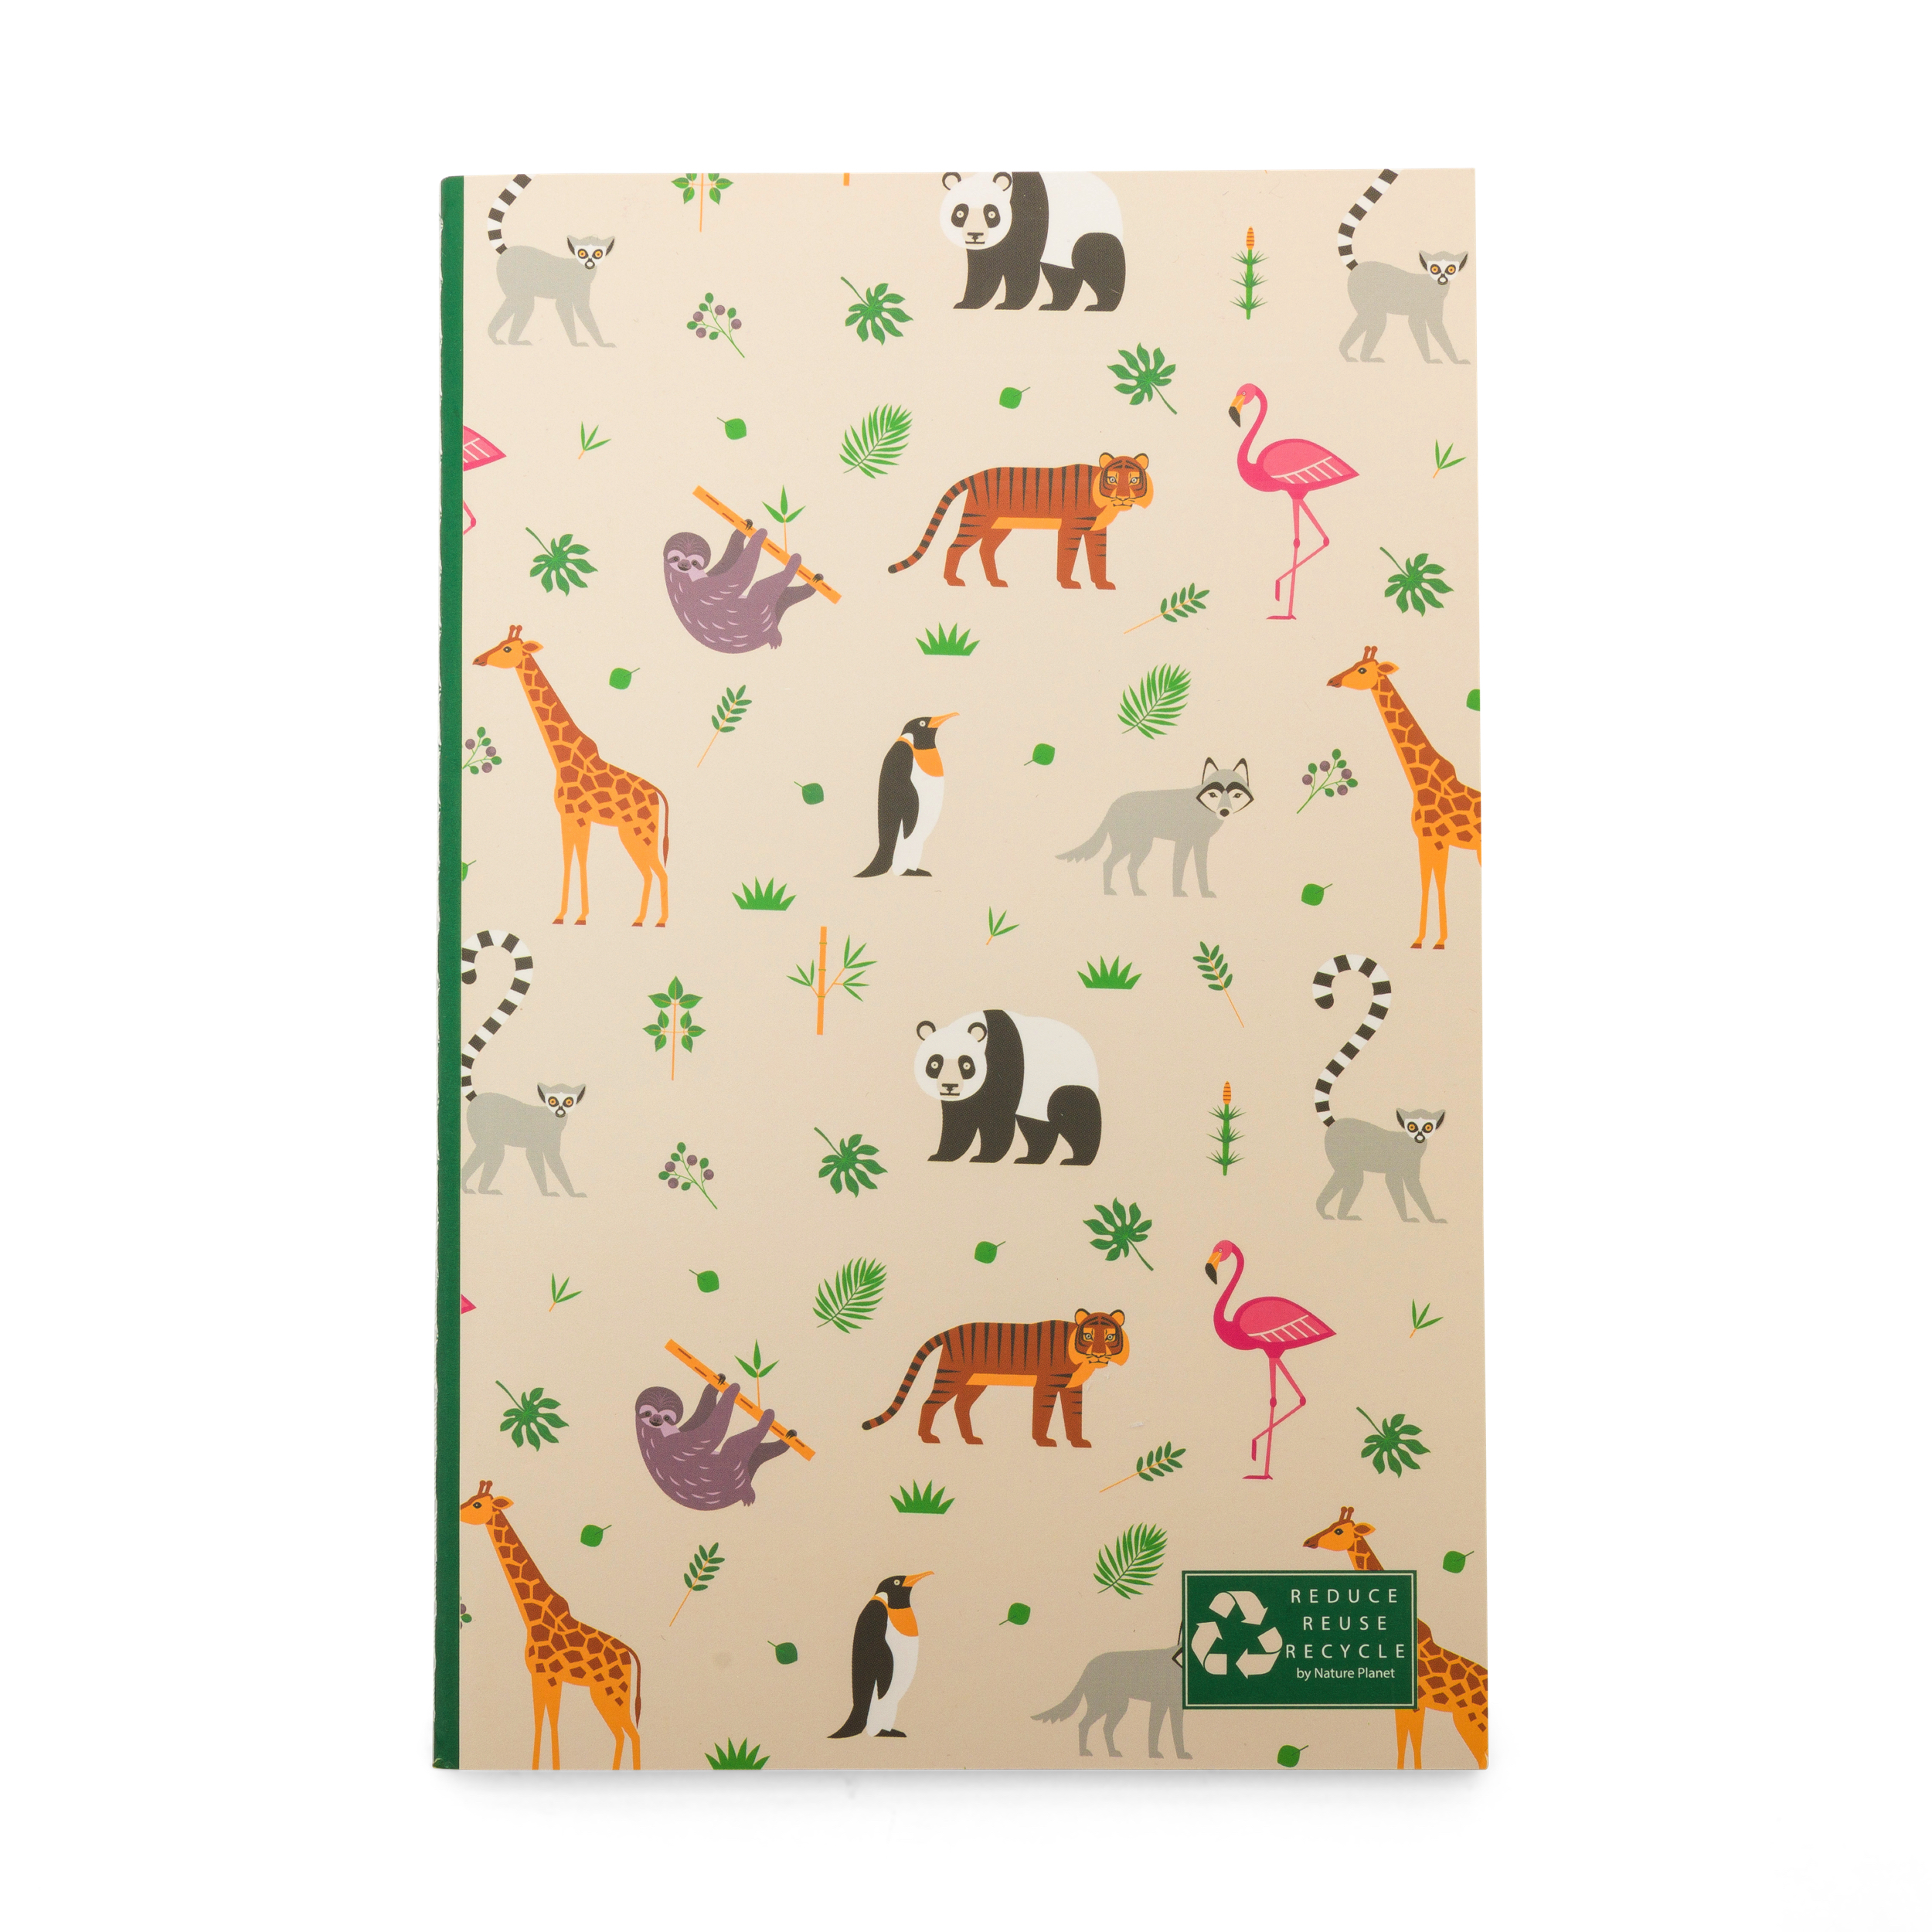 Animal recycled notebook